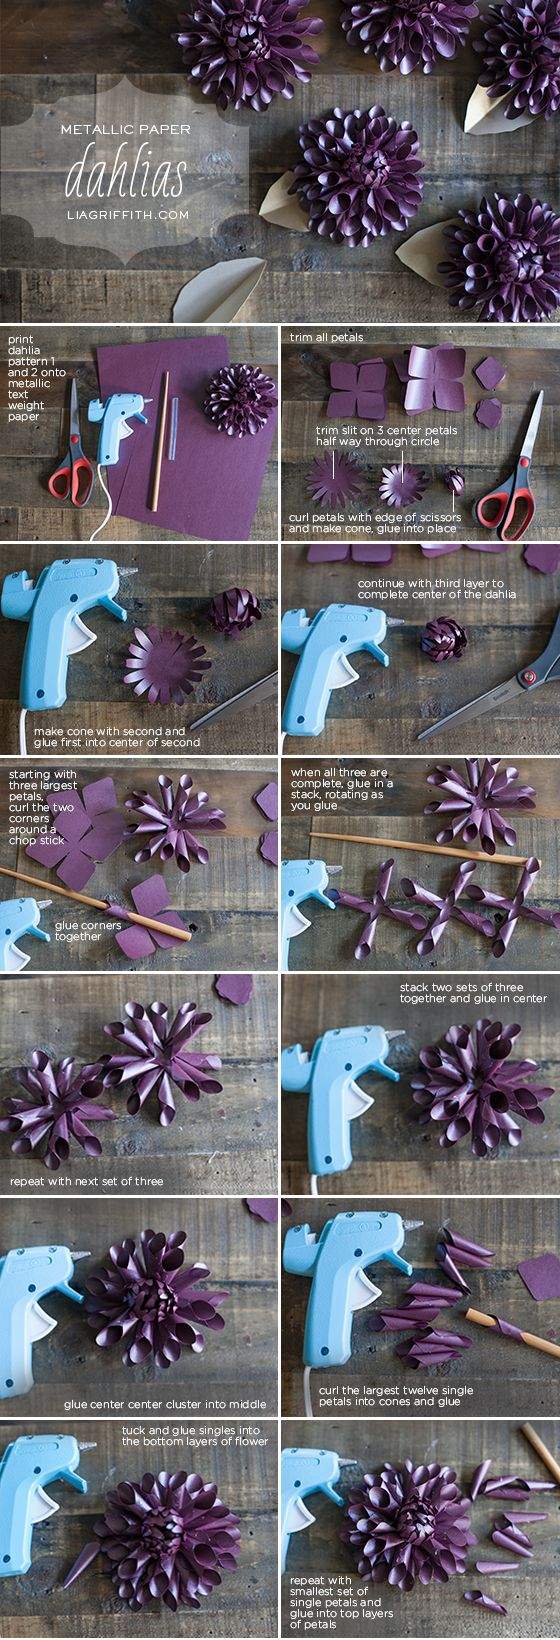 Make a Paper Dahlia for Fall